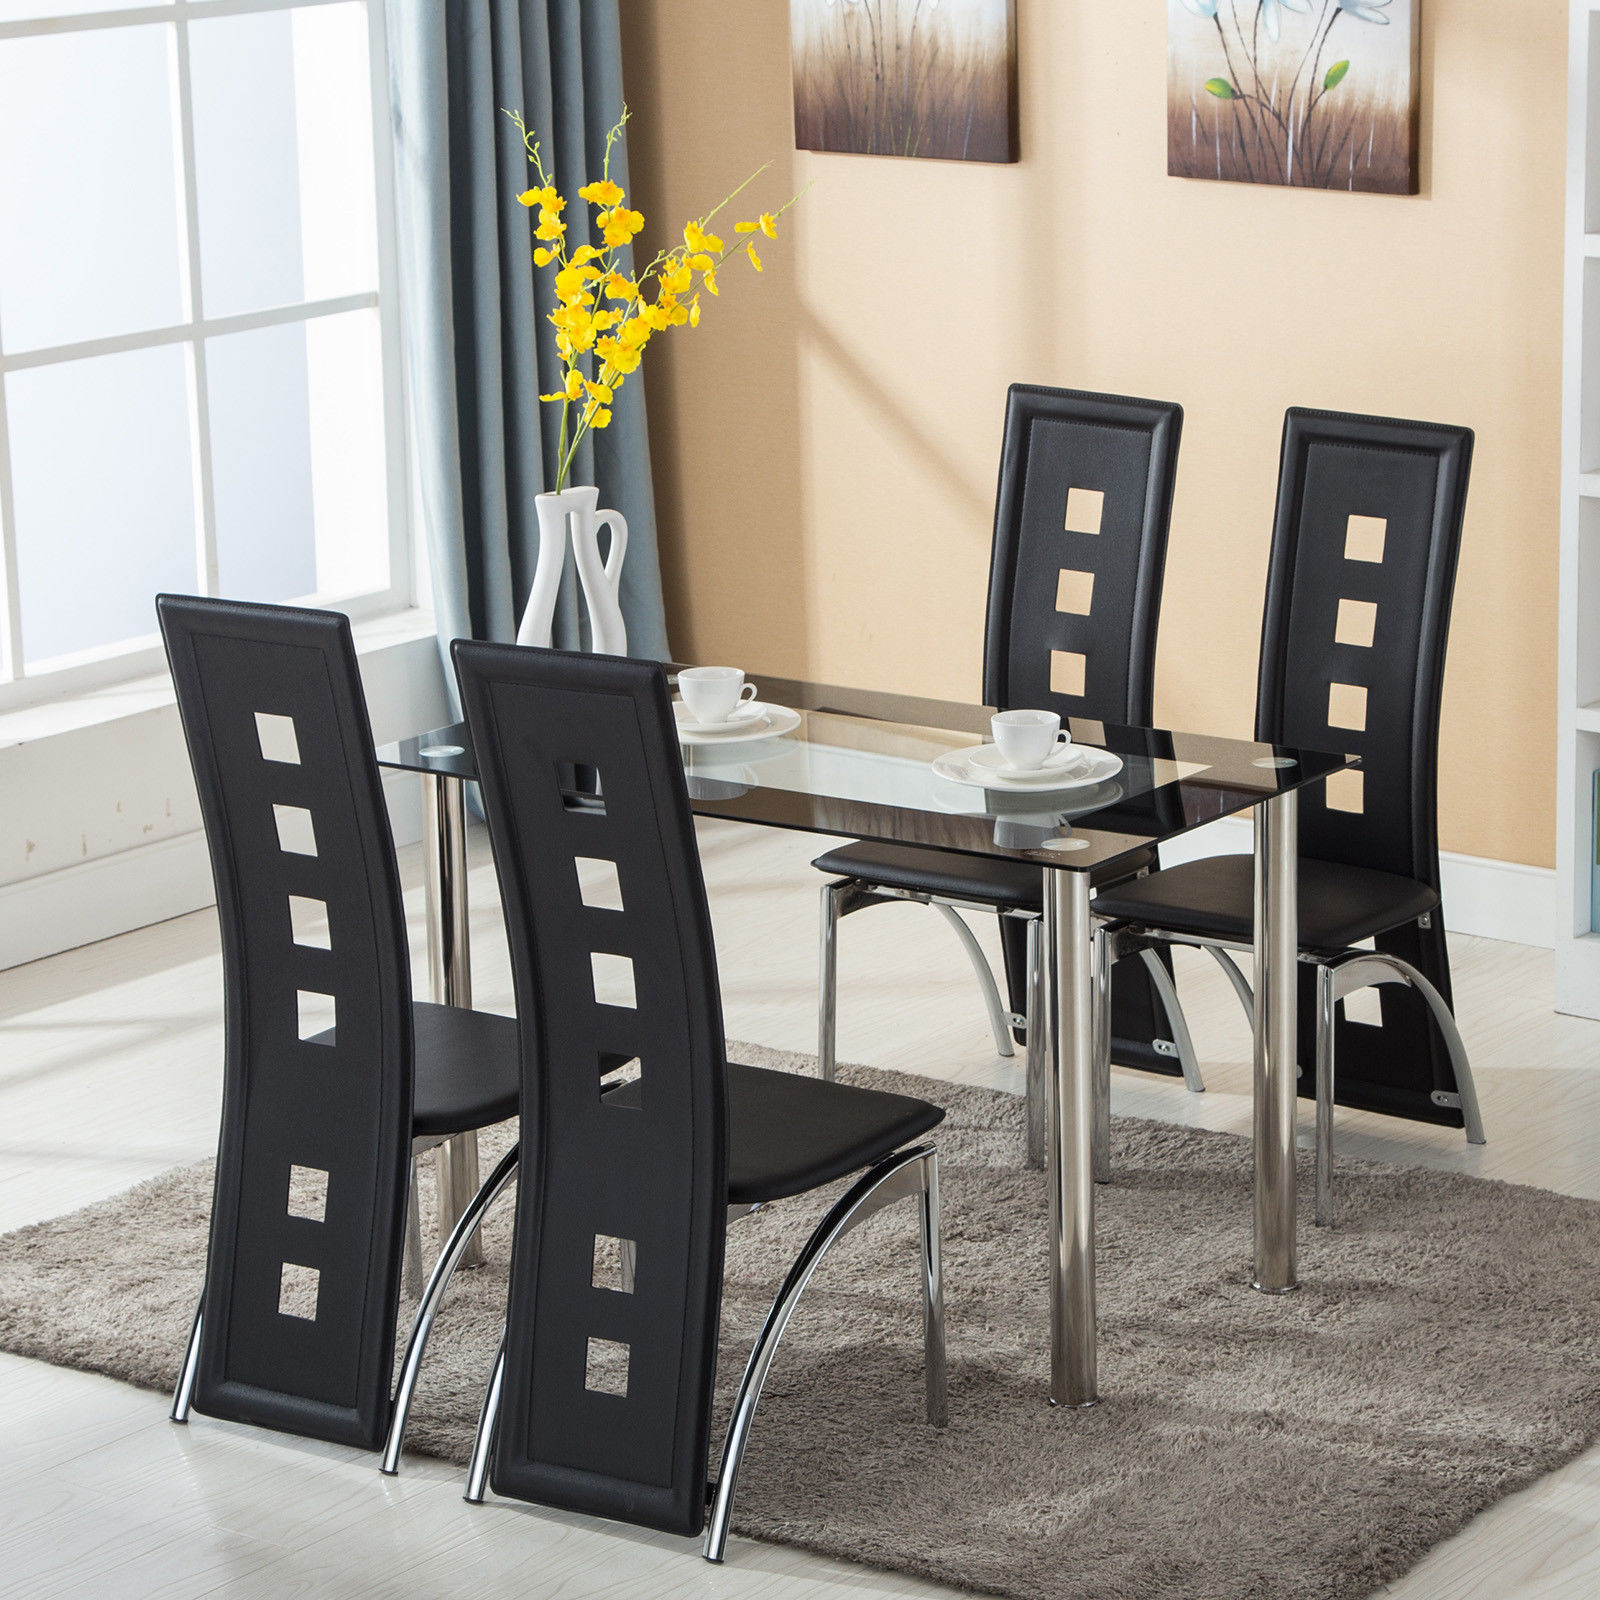 Leather Dining Set: 5 Piece Dining Set Glass Top Table And 4 Leather Chair For